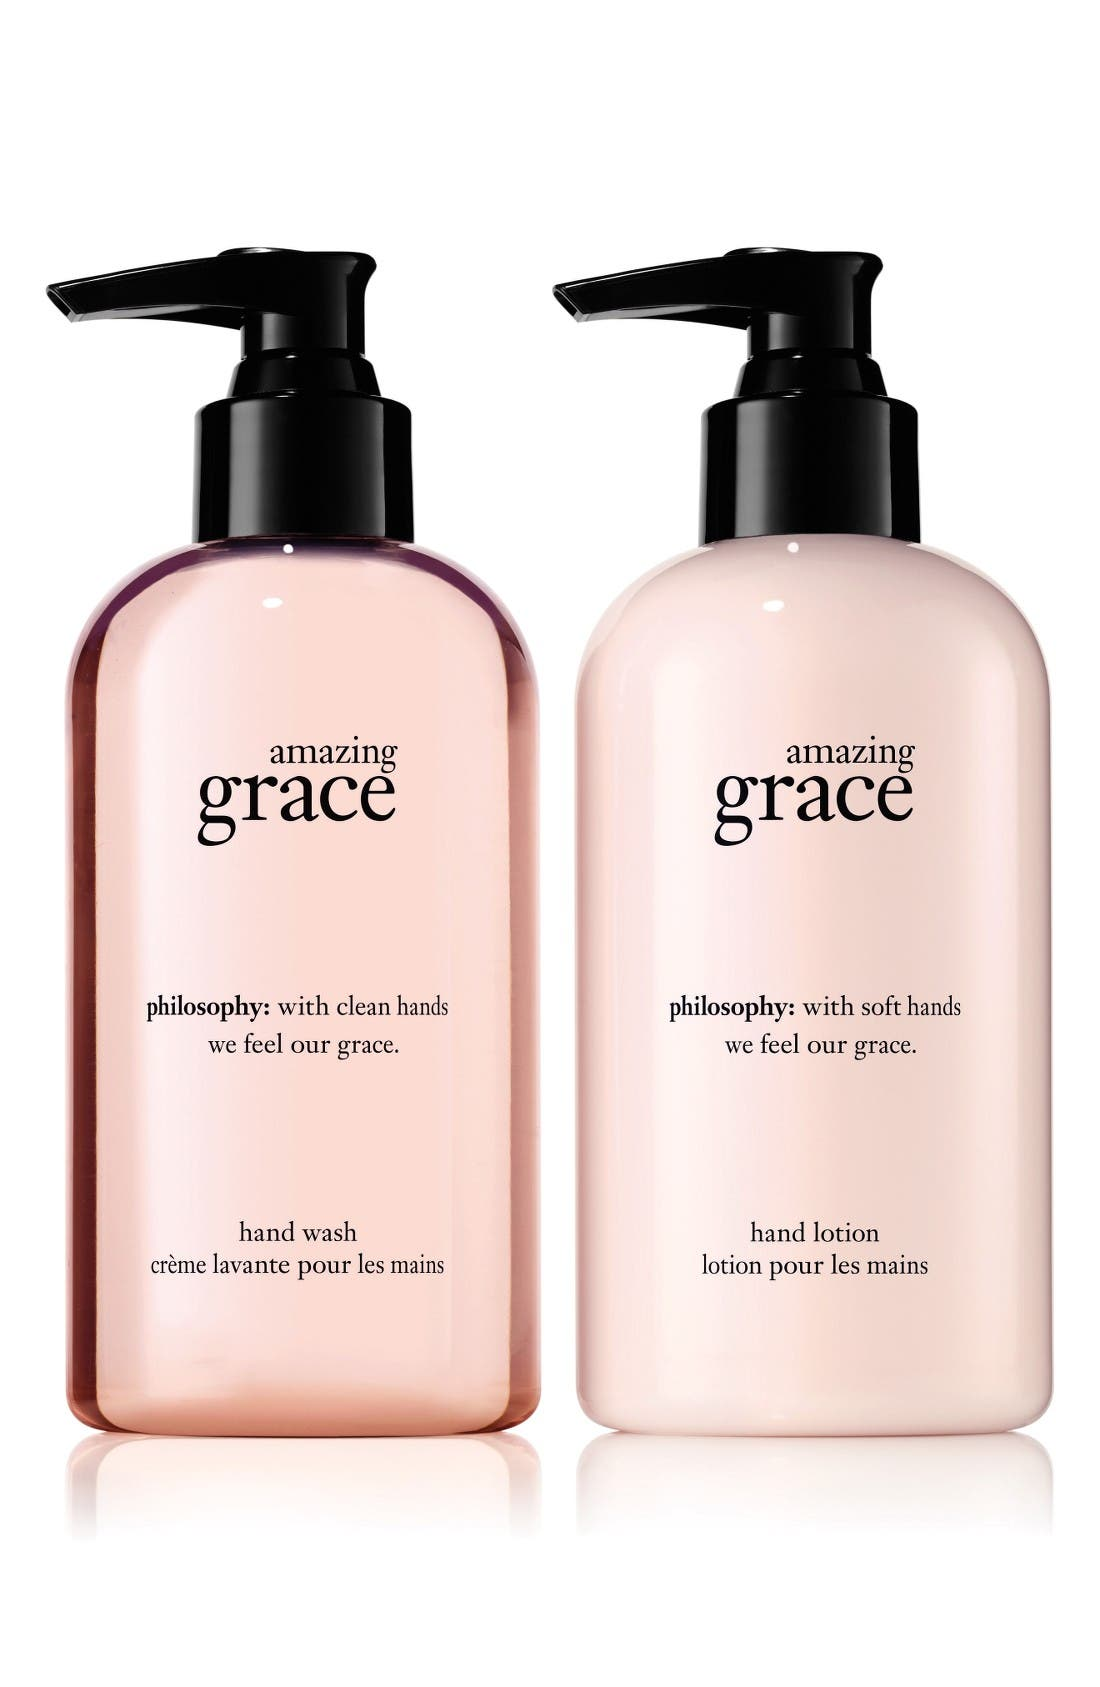 Alternate Image 1 Selected - philosophy amazing grace handcare duo (Limited Edition)